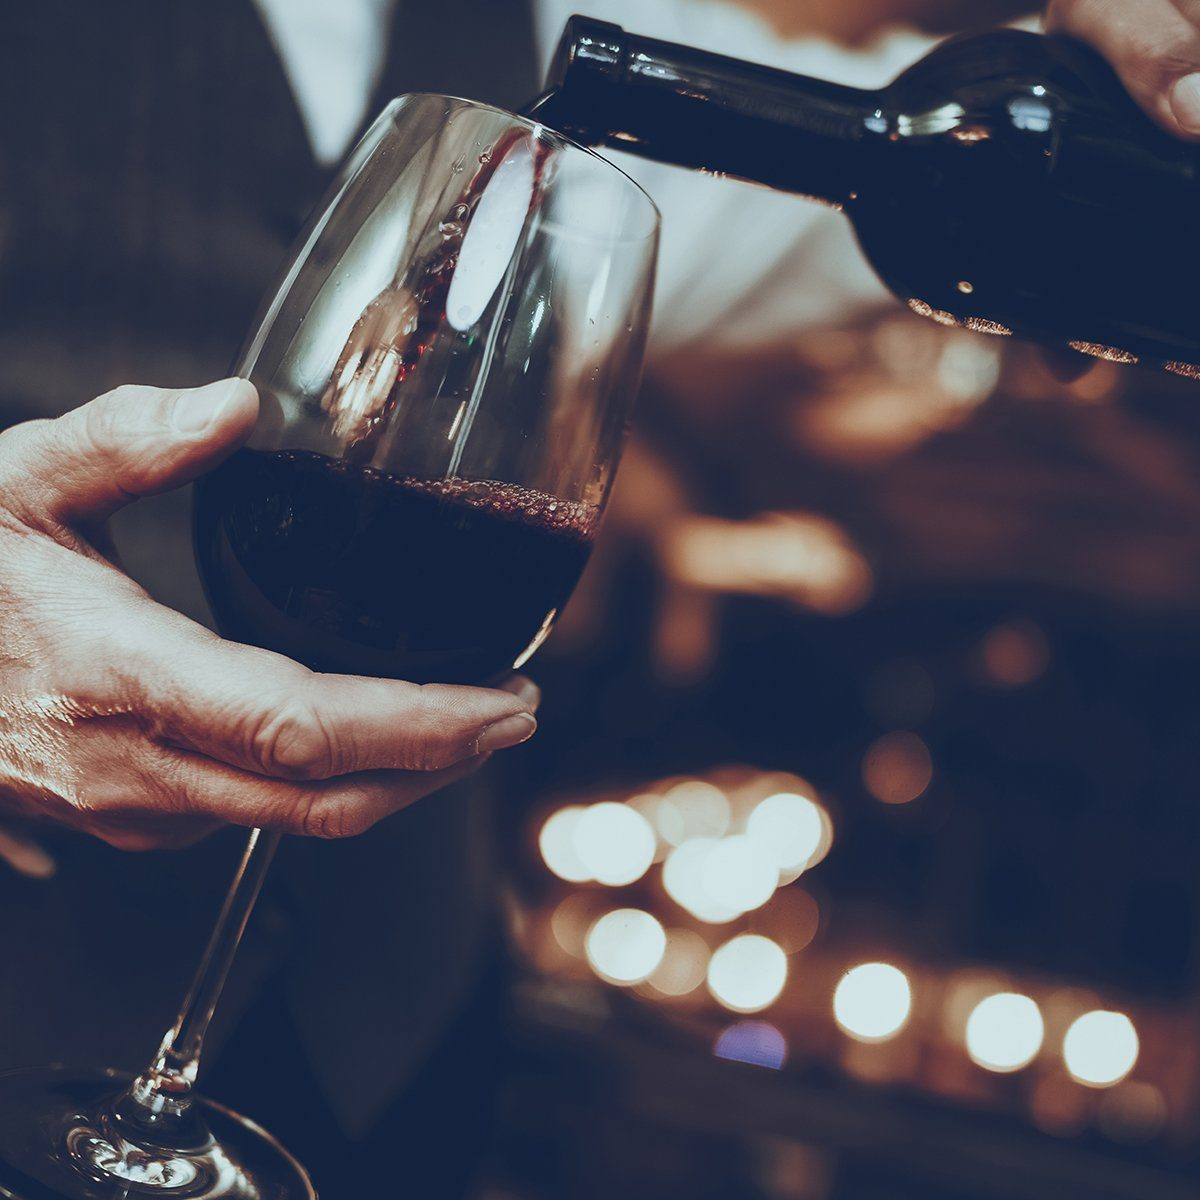 Experienced Sommelier is Working in Restaurant. Sommelier is Pouring Wine from Bottle to Glass. Red Wine. Sommelier is Caucasian Man. Person is Wearing Special Uniform. Closeup View.